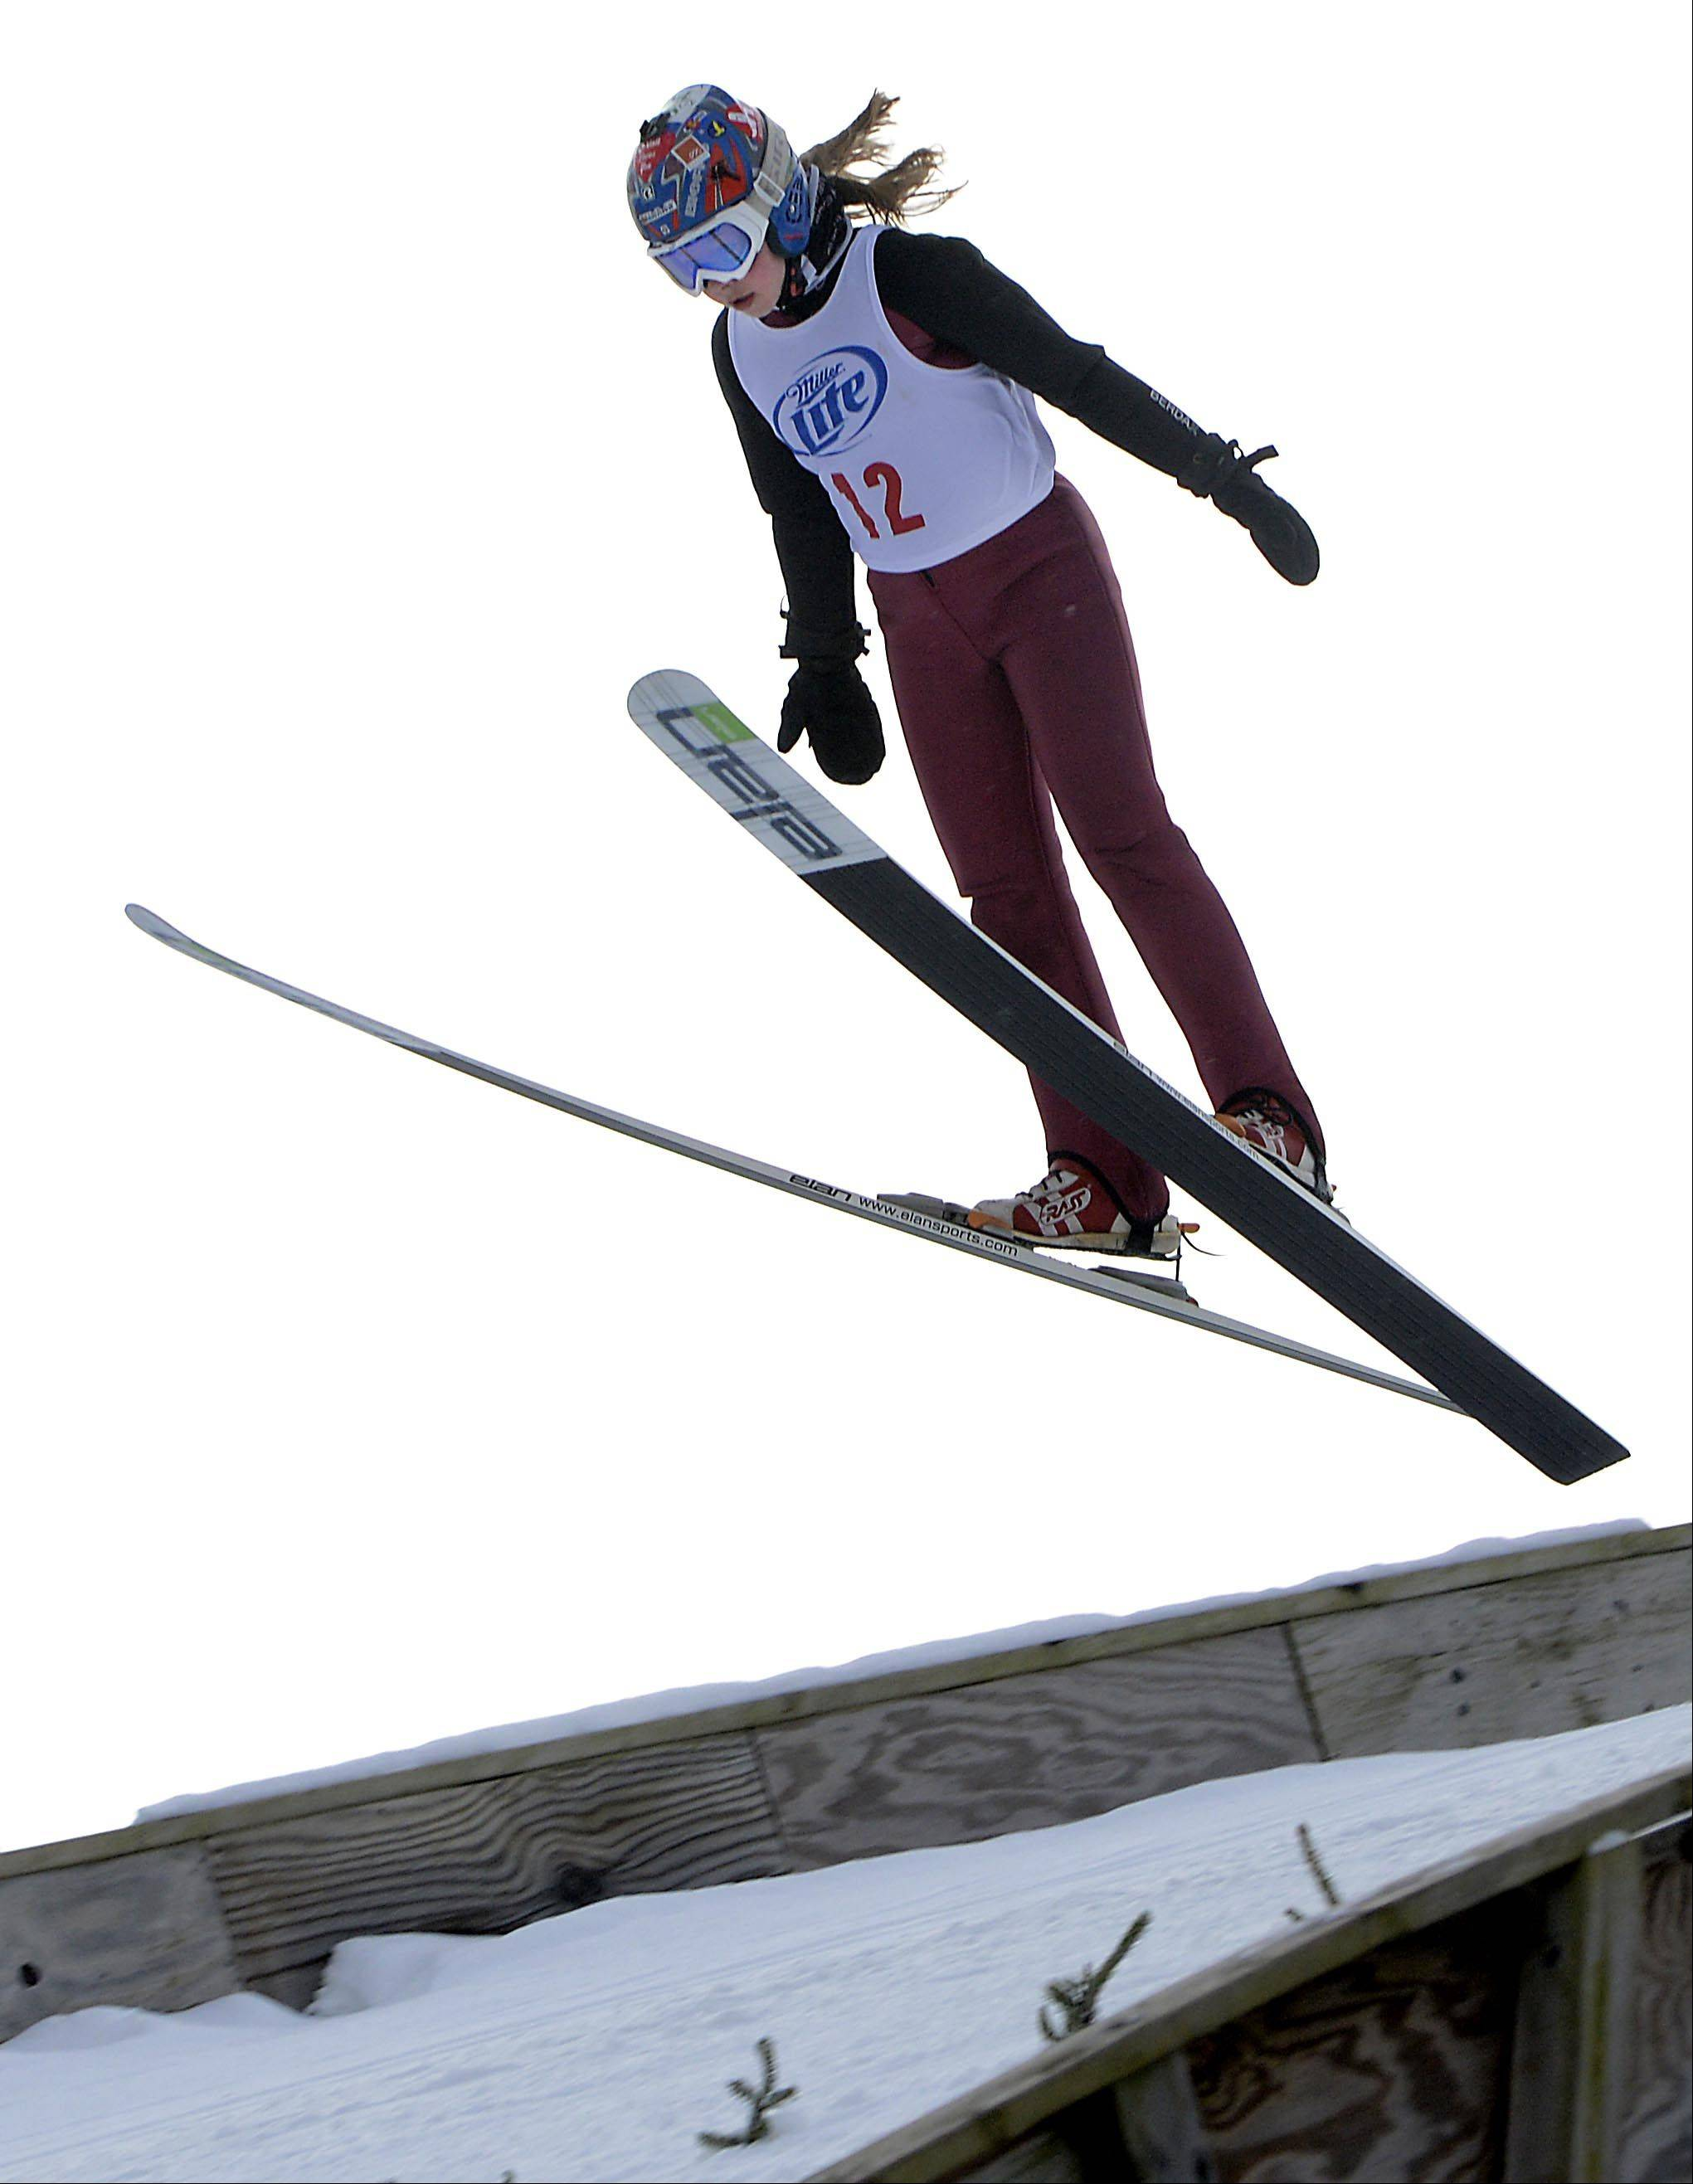 Cara Larson, 13, of Barrington competes in the Under 20 Women's Class, jumps Sunday at the Norge International Ski Jumping Tournament in Fox River Grove. She belongs to the Norge Ski Club and has been jumping for six years.